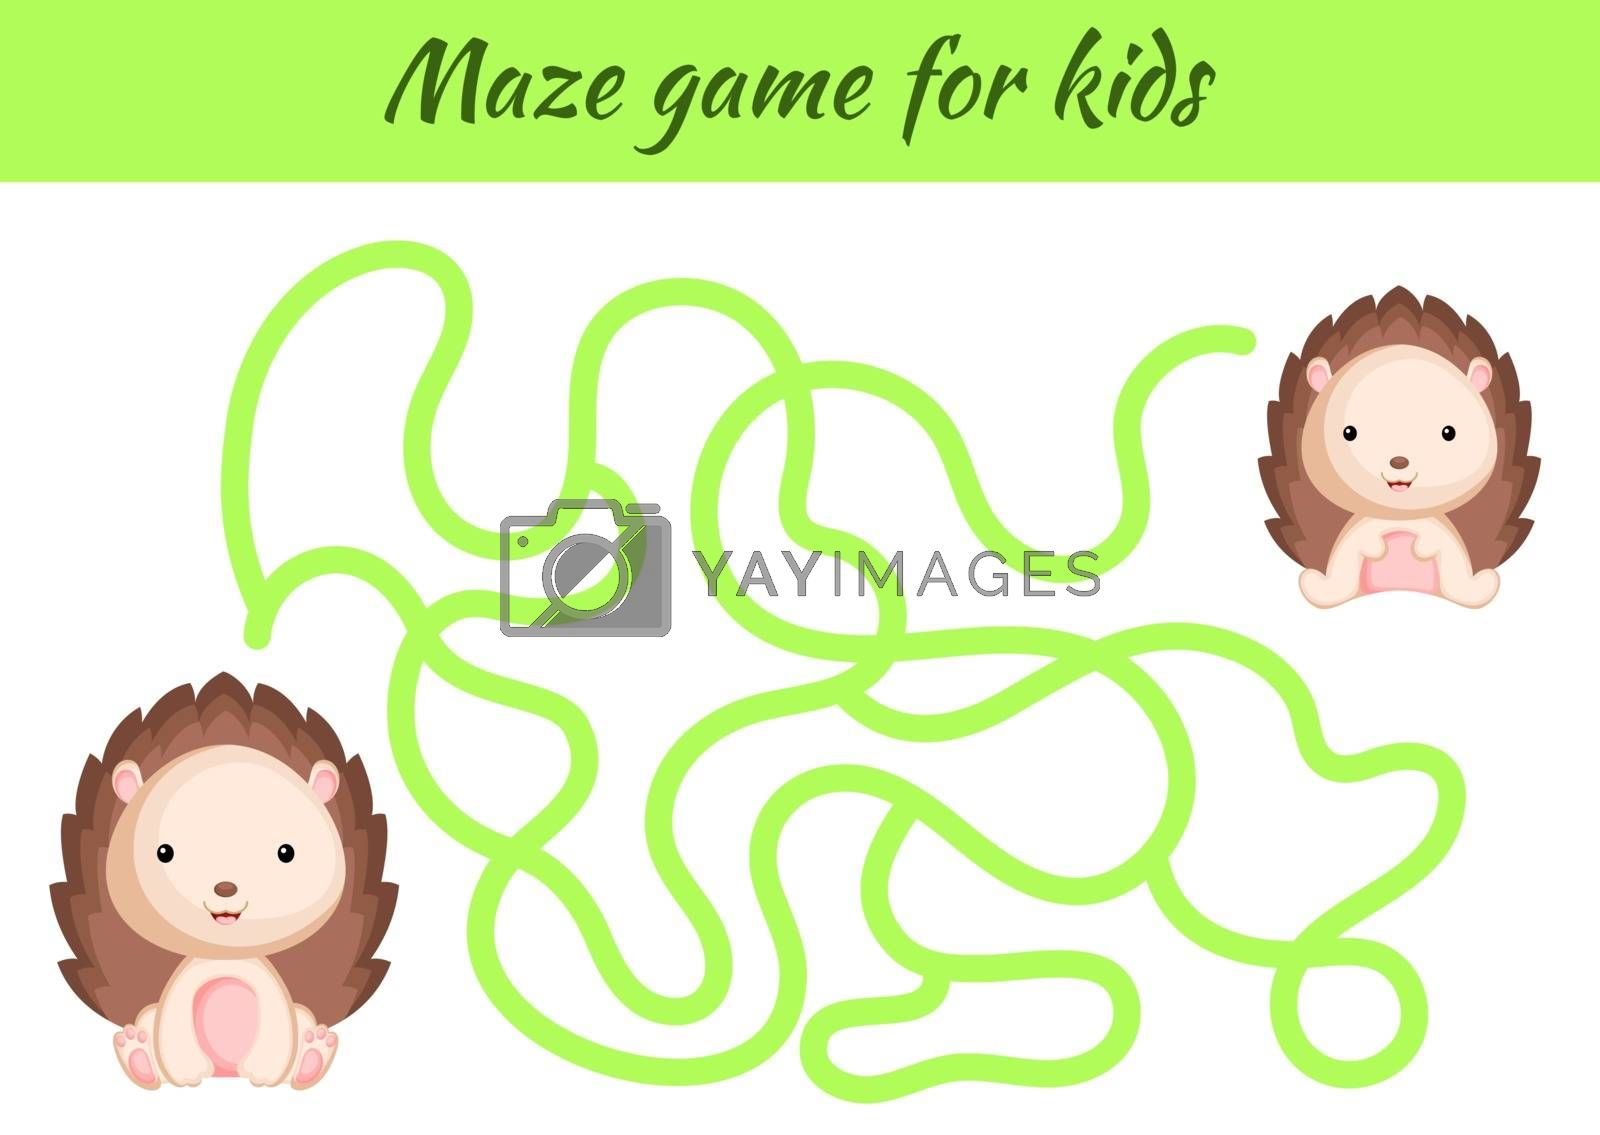 Funny maze or labyrinth game for kids. Help mother find path to baby. Education developing worksheet. Activity page. Cartoon hedgehog characters. Riddle for preschool. Color vector stock illustration.